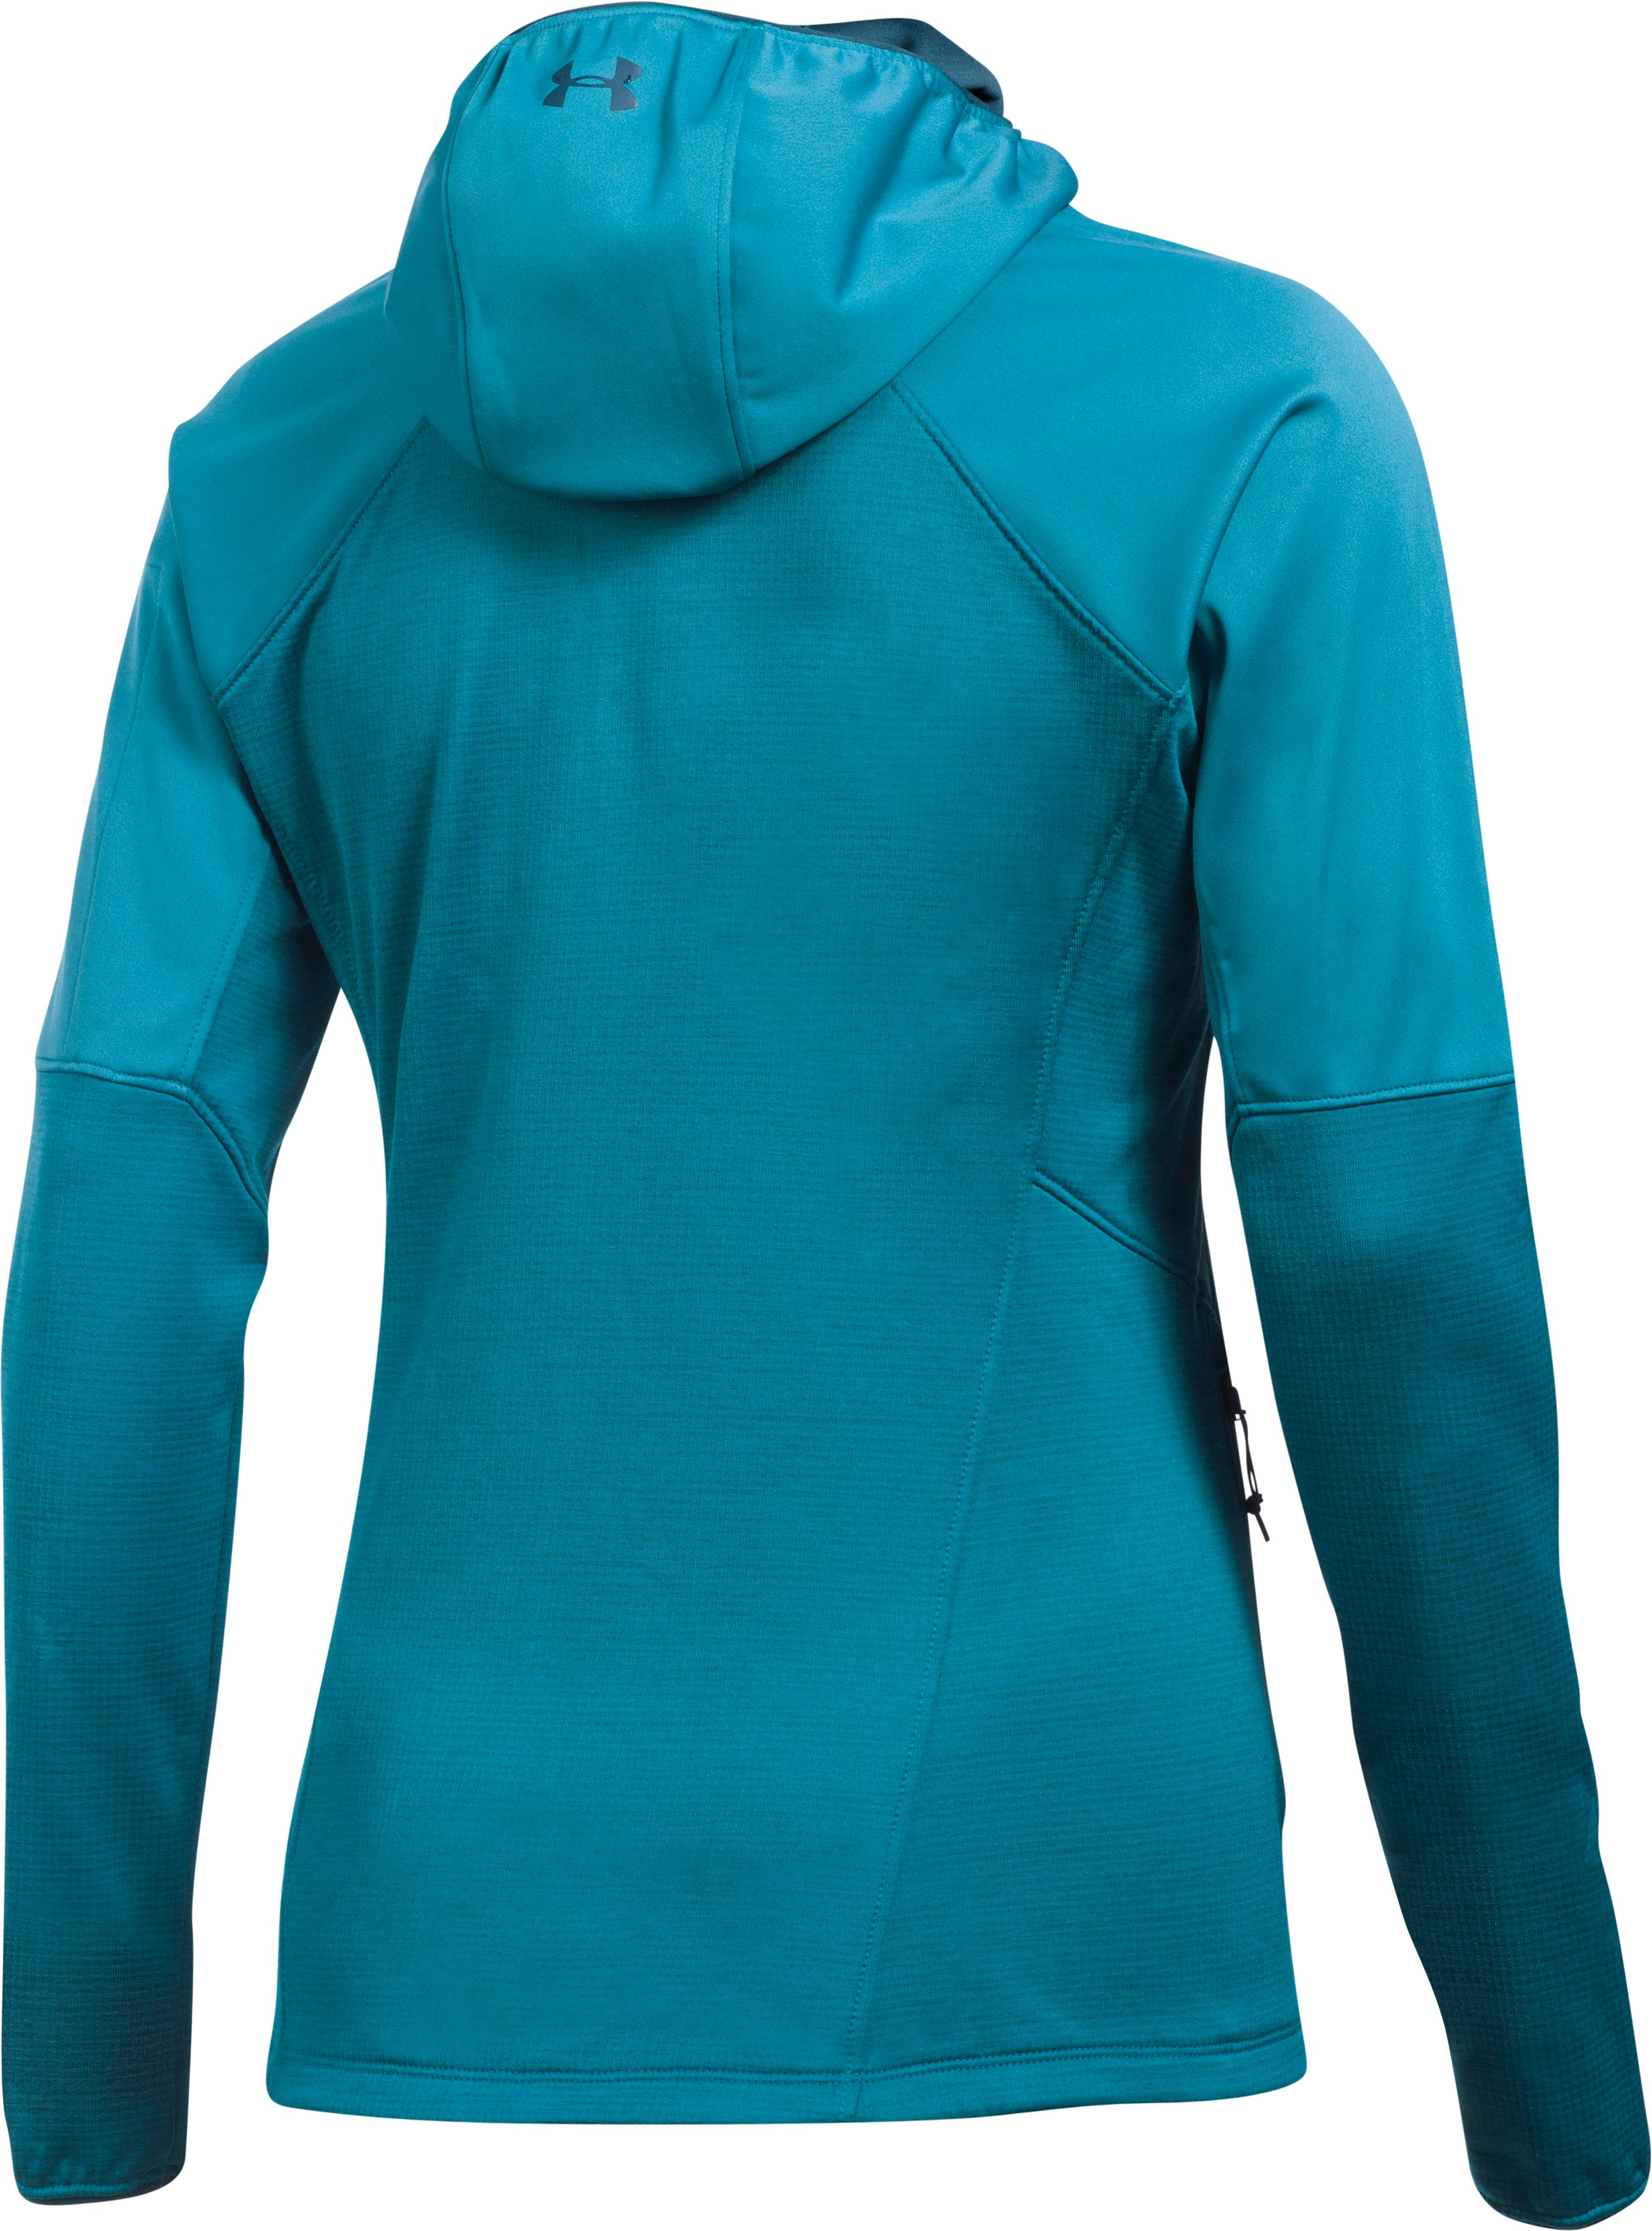 Women's ColdGear® Reactor Fleece Jacket, BAYOU BLUE,